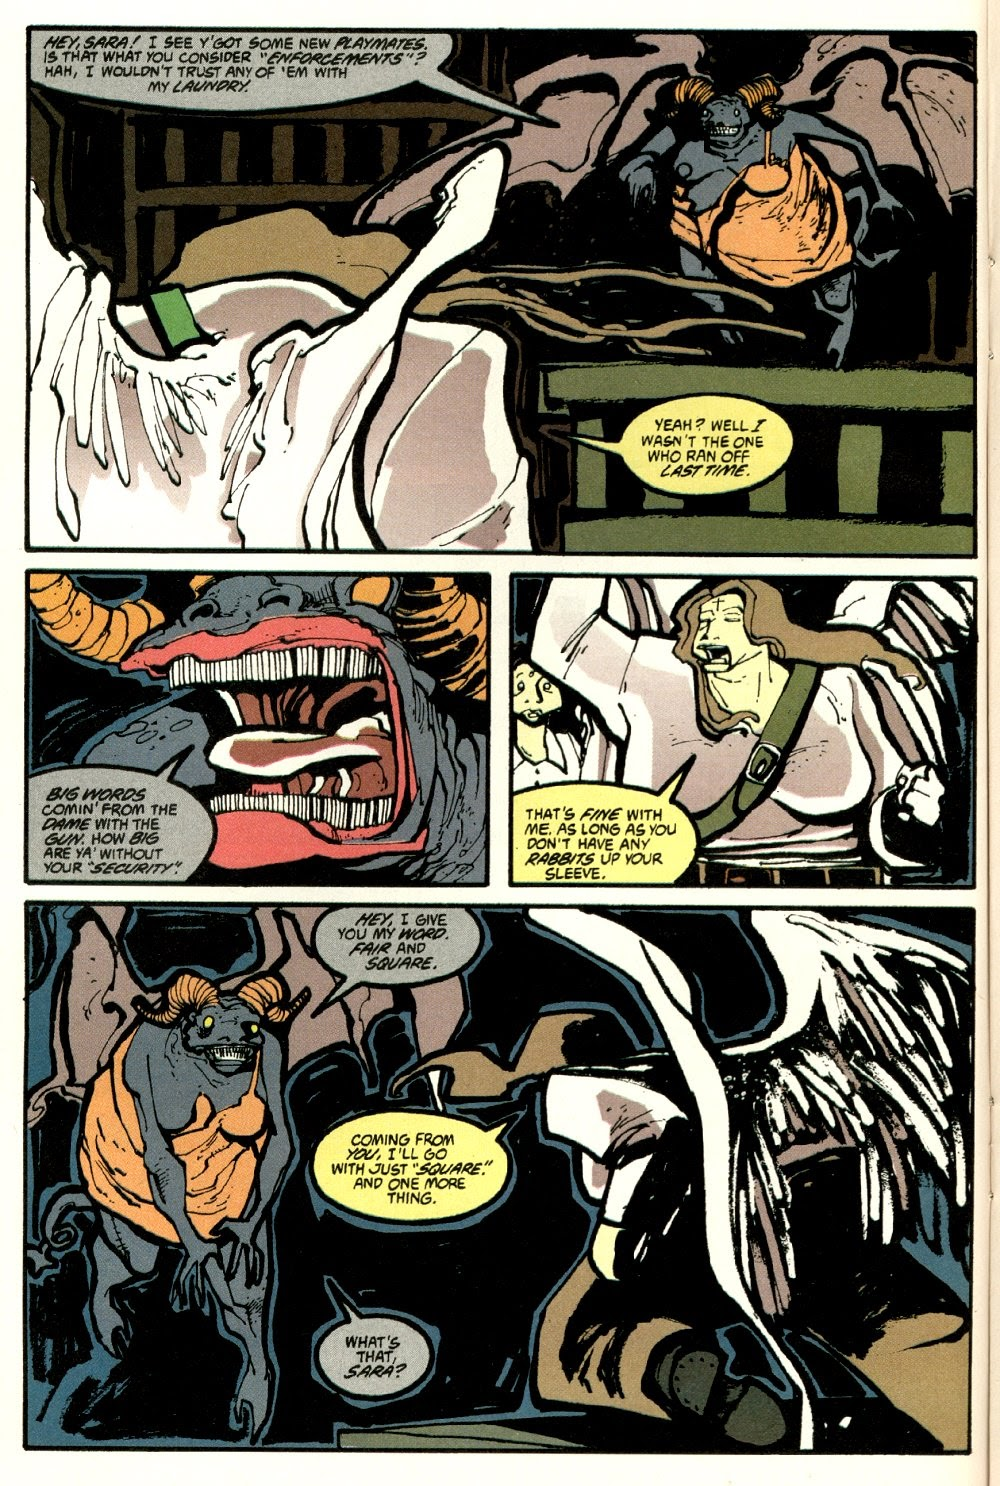 Read online Ted McKeever's Metropol comic -  Issue #8 - 14